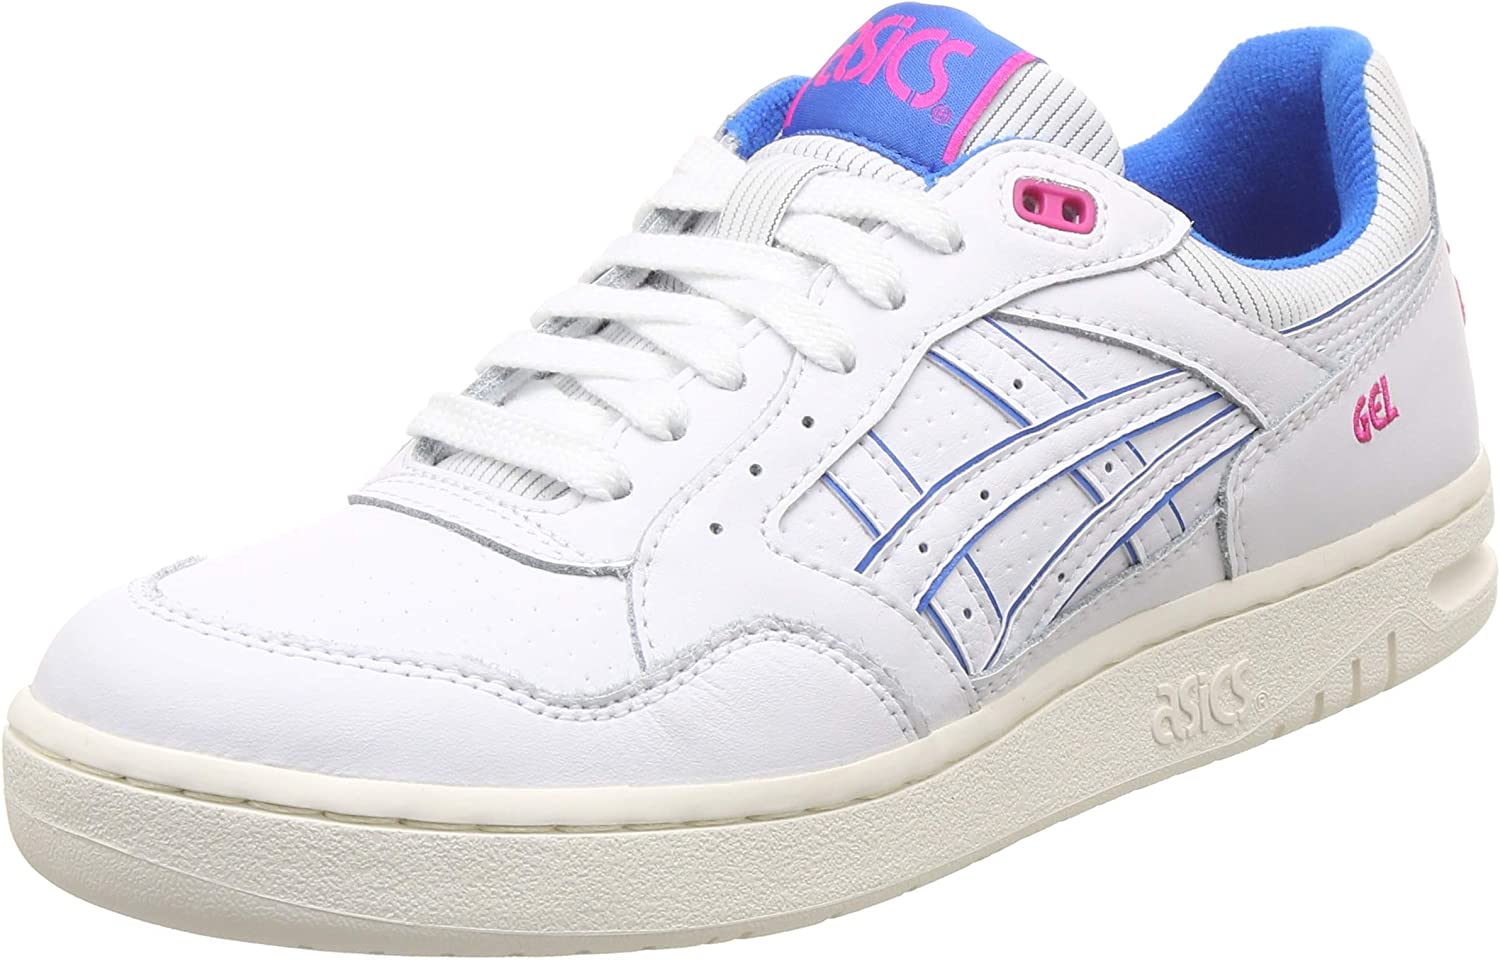 ASICS shoes Mens Sporty Genuine Leather Sneaker Gel Circuit White